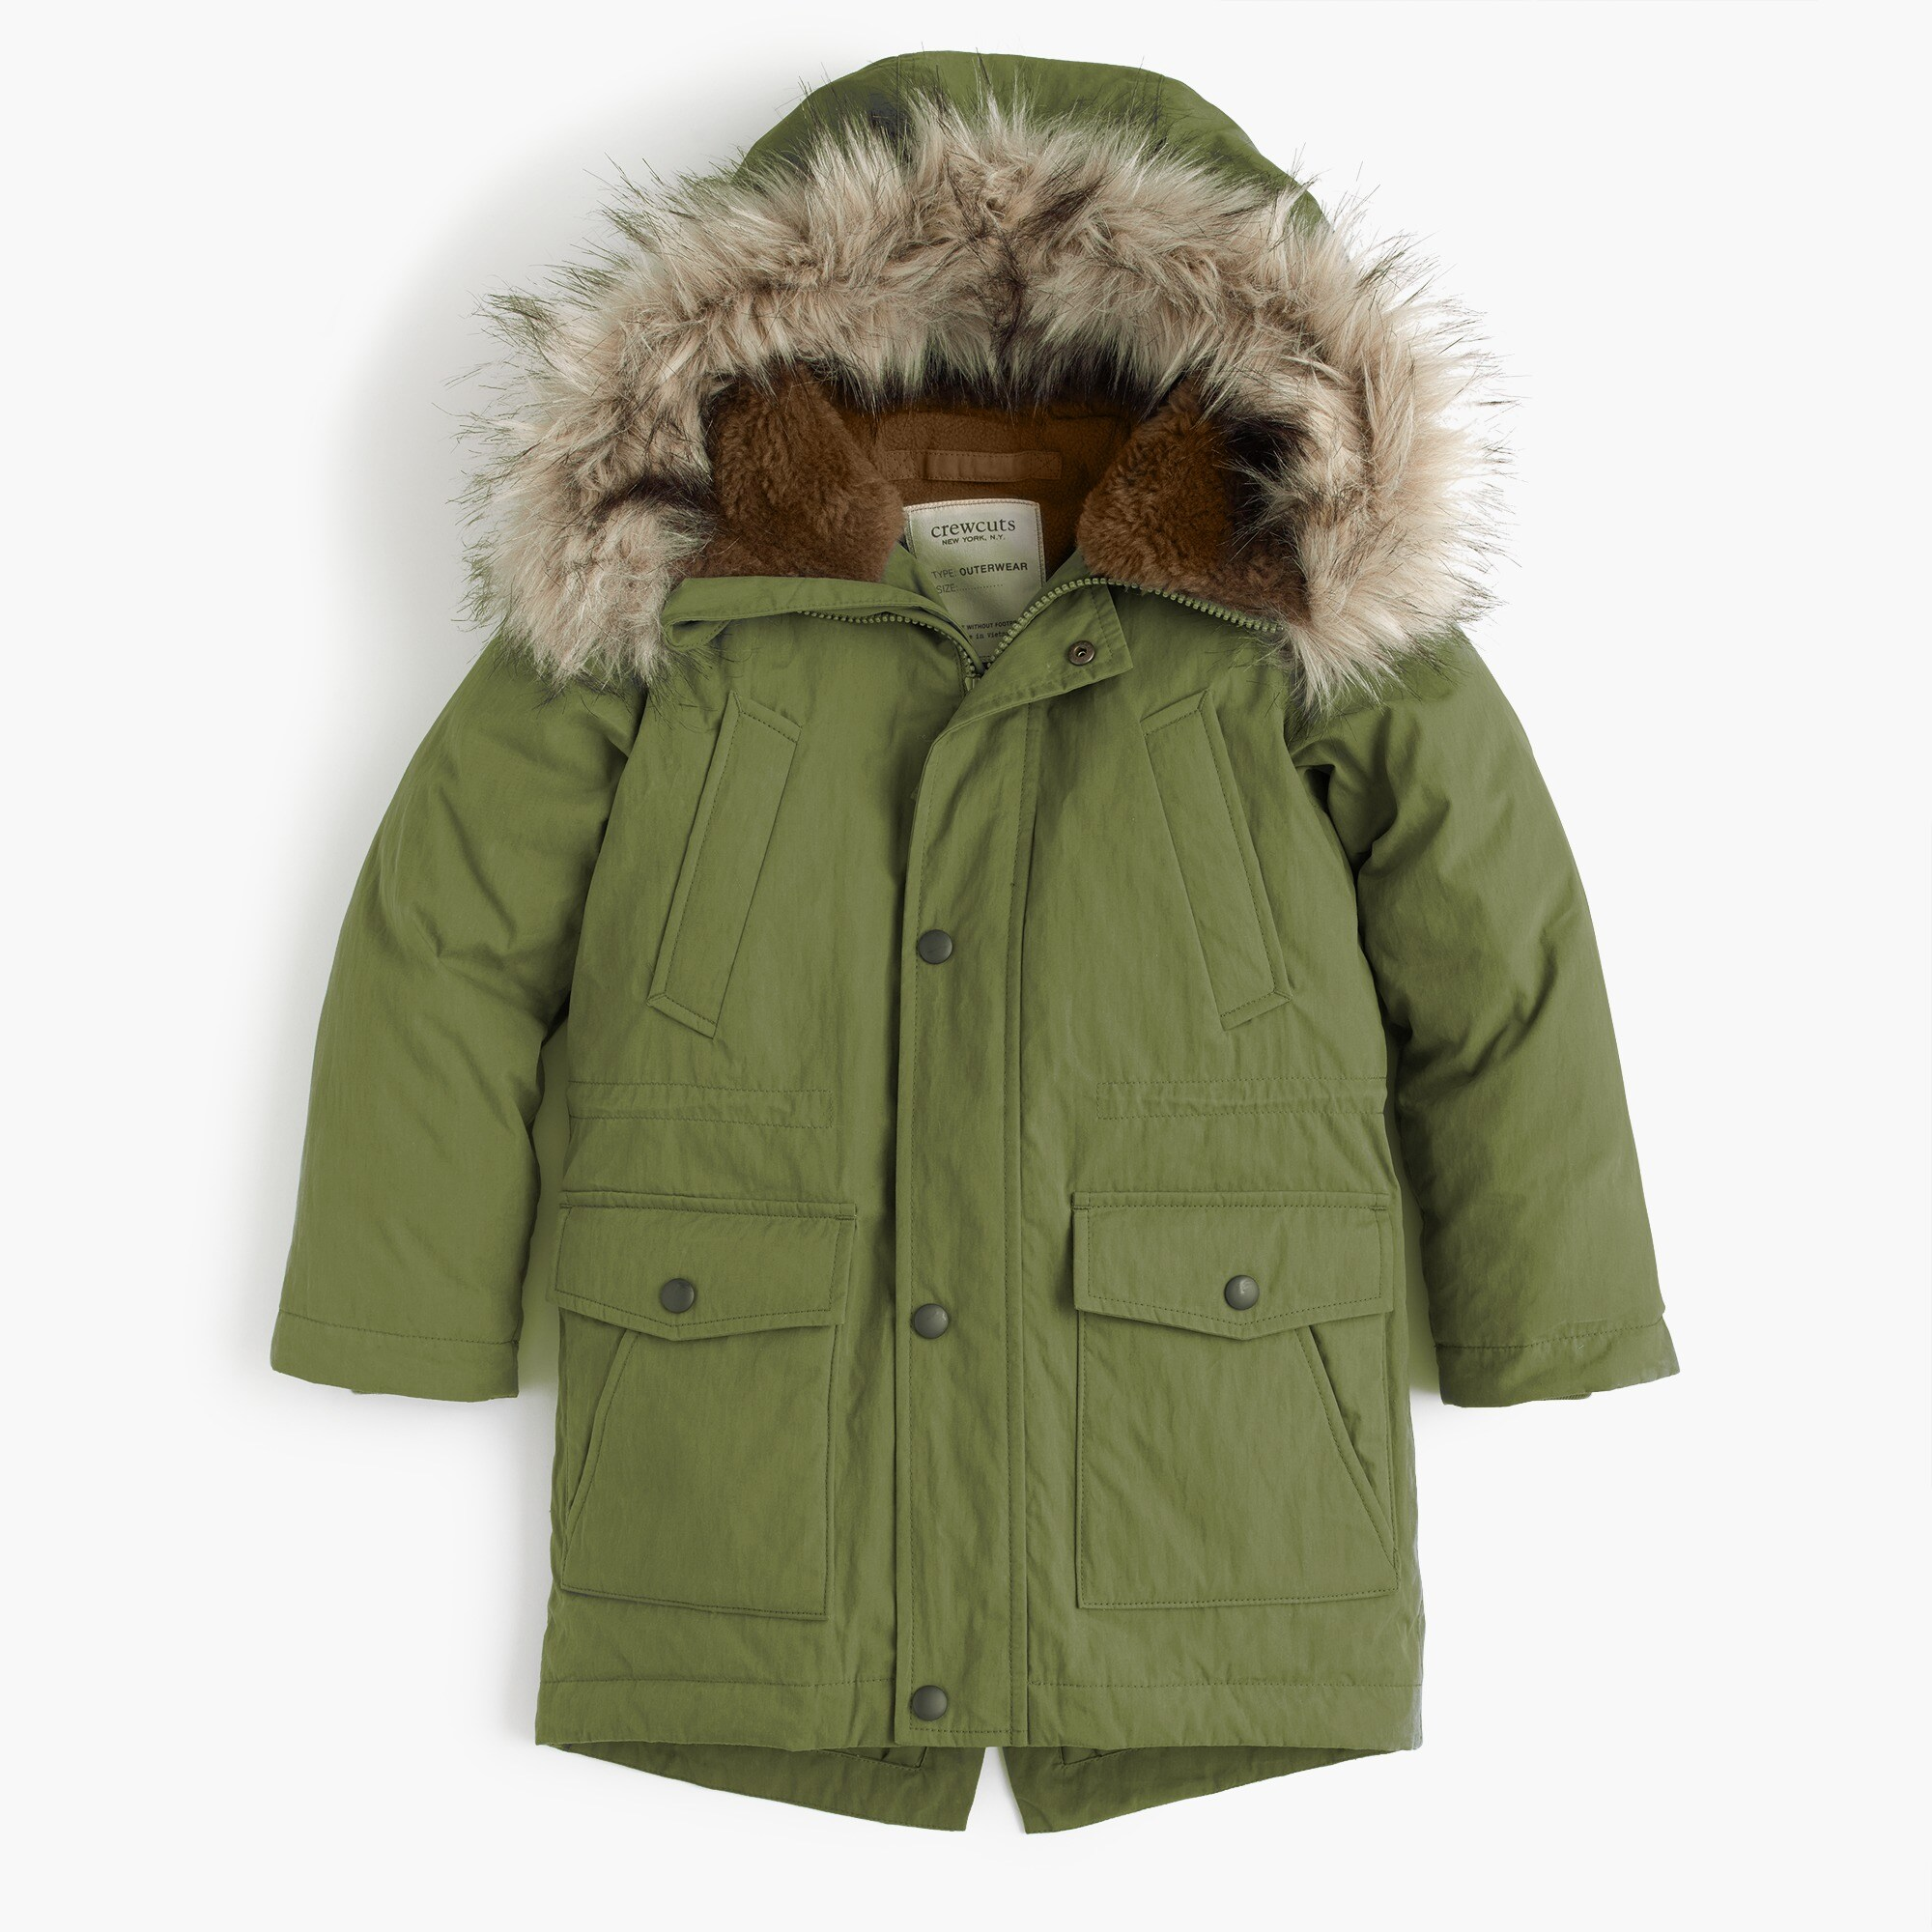 Boys' fishtail parka boy coats & jackets c